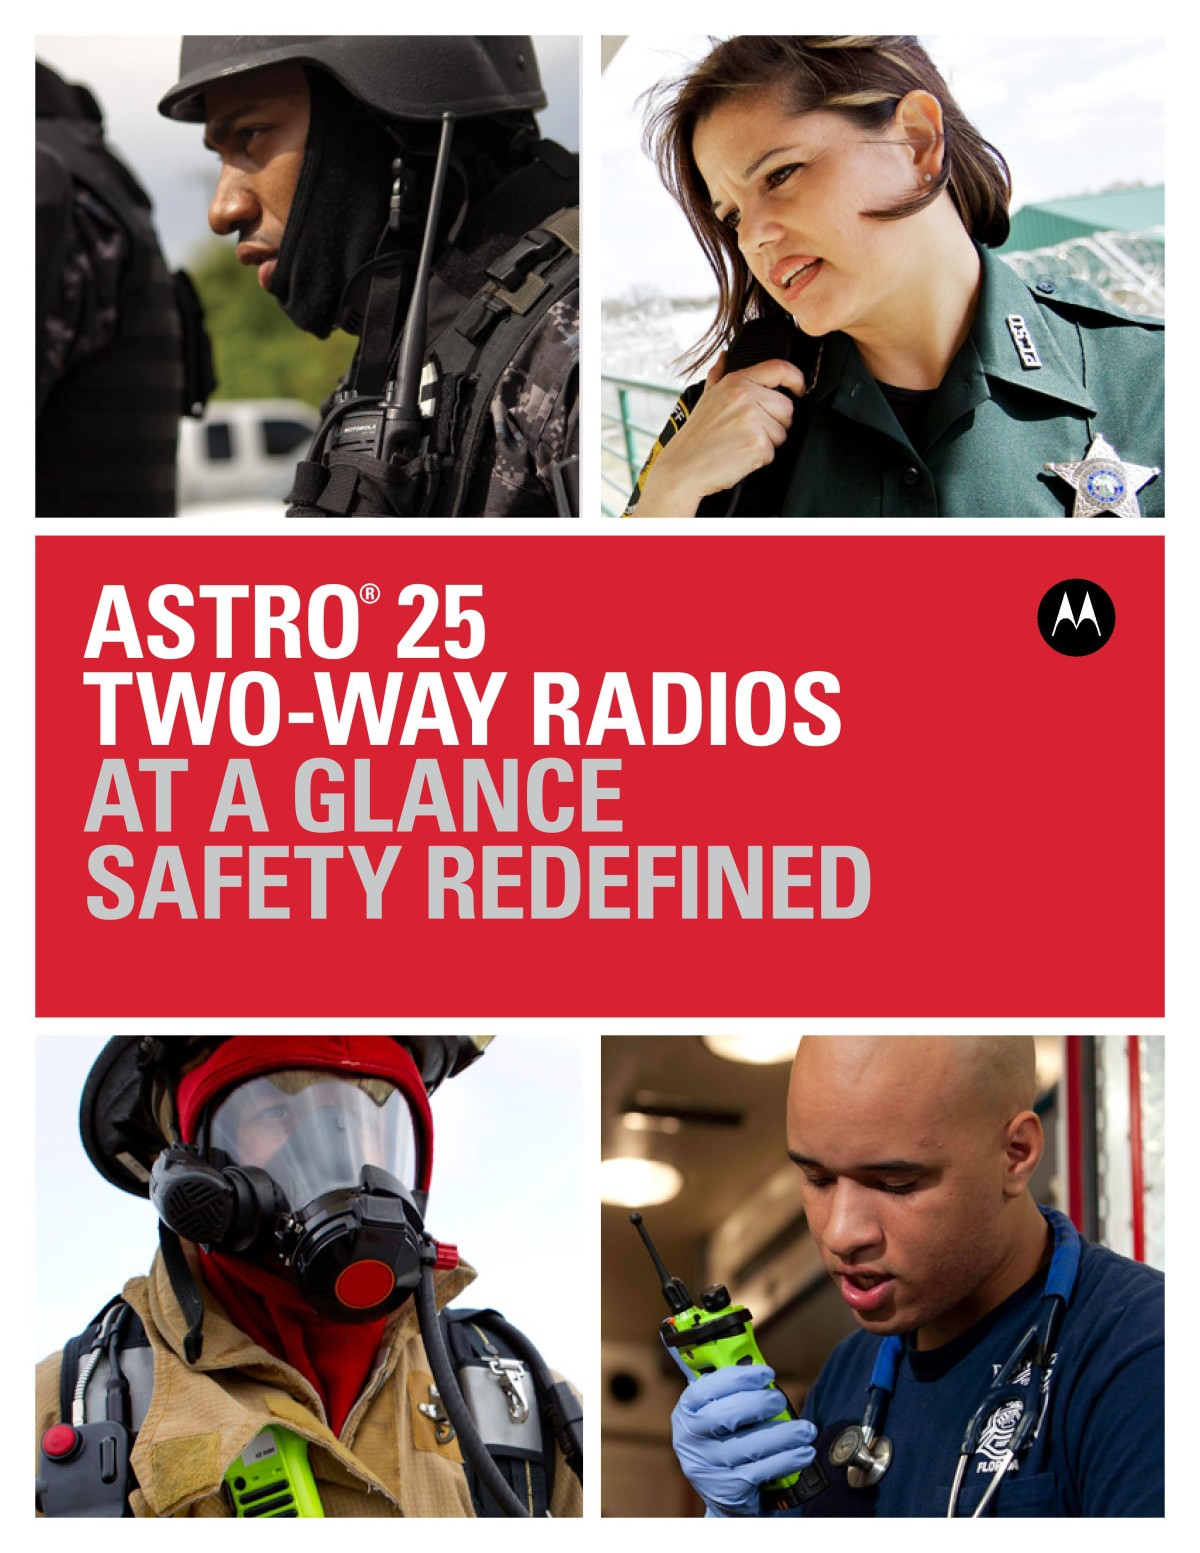 Astro 25 Two Way Radios at a Glance Safety Redefined